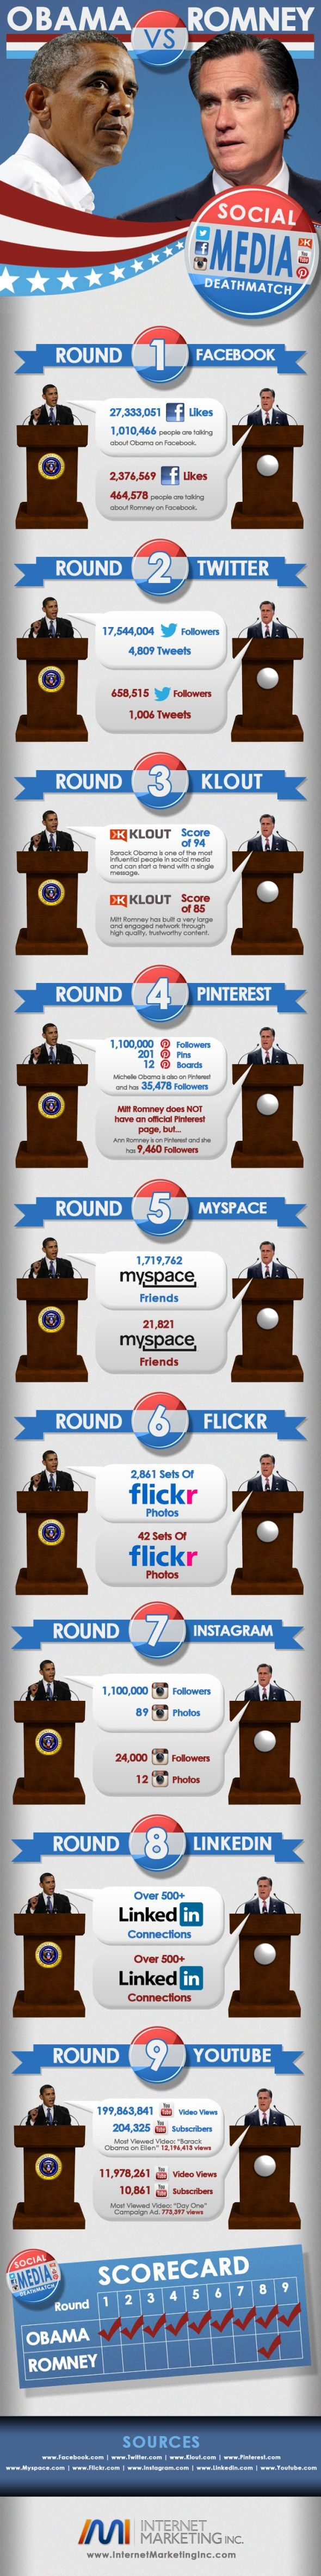 Nice blogpost about Infographic: Social Media Showdown - Obama vs Romney by Infographics Archive